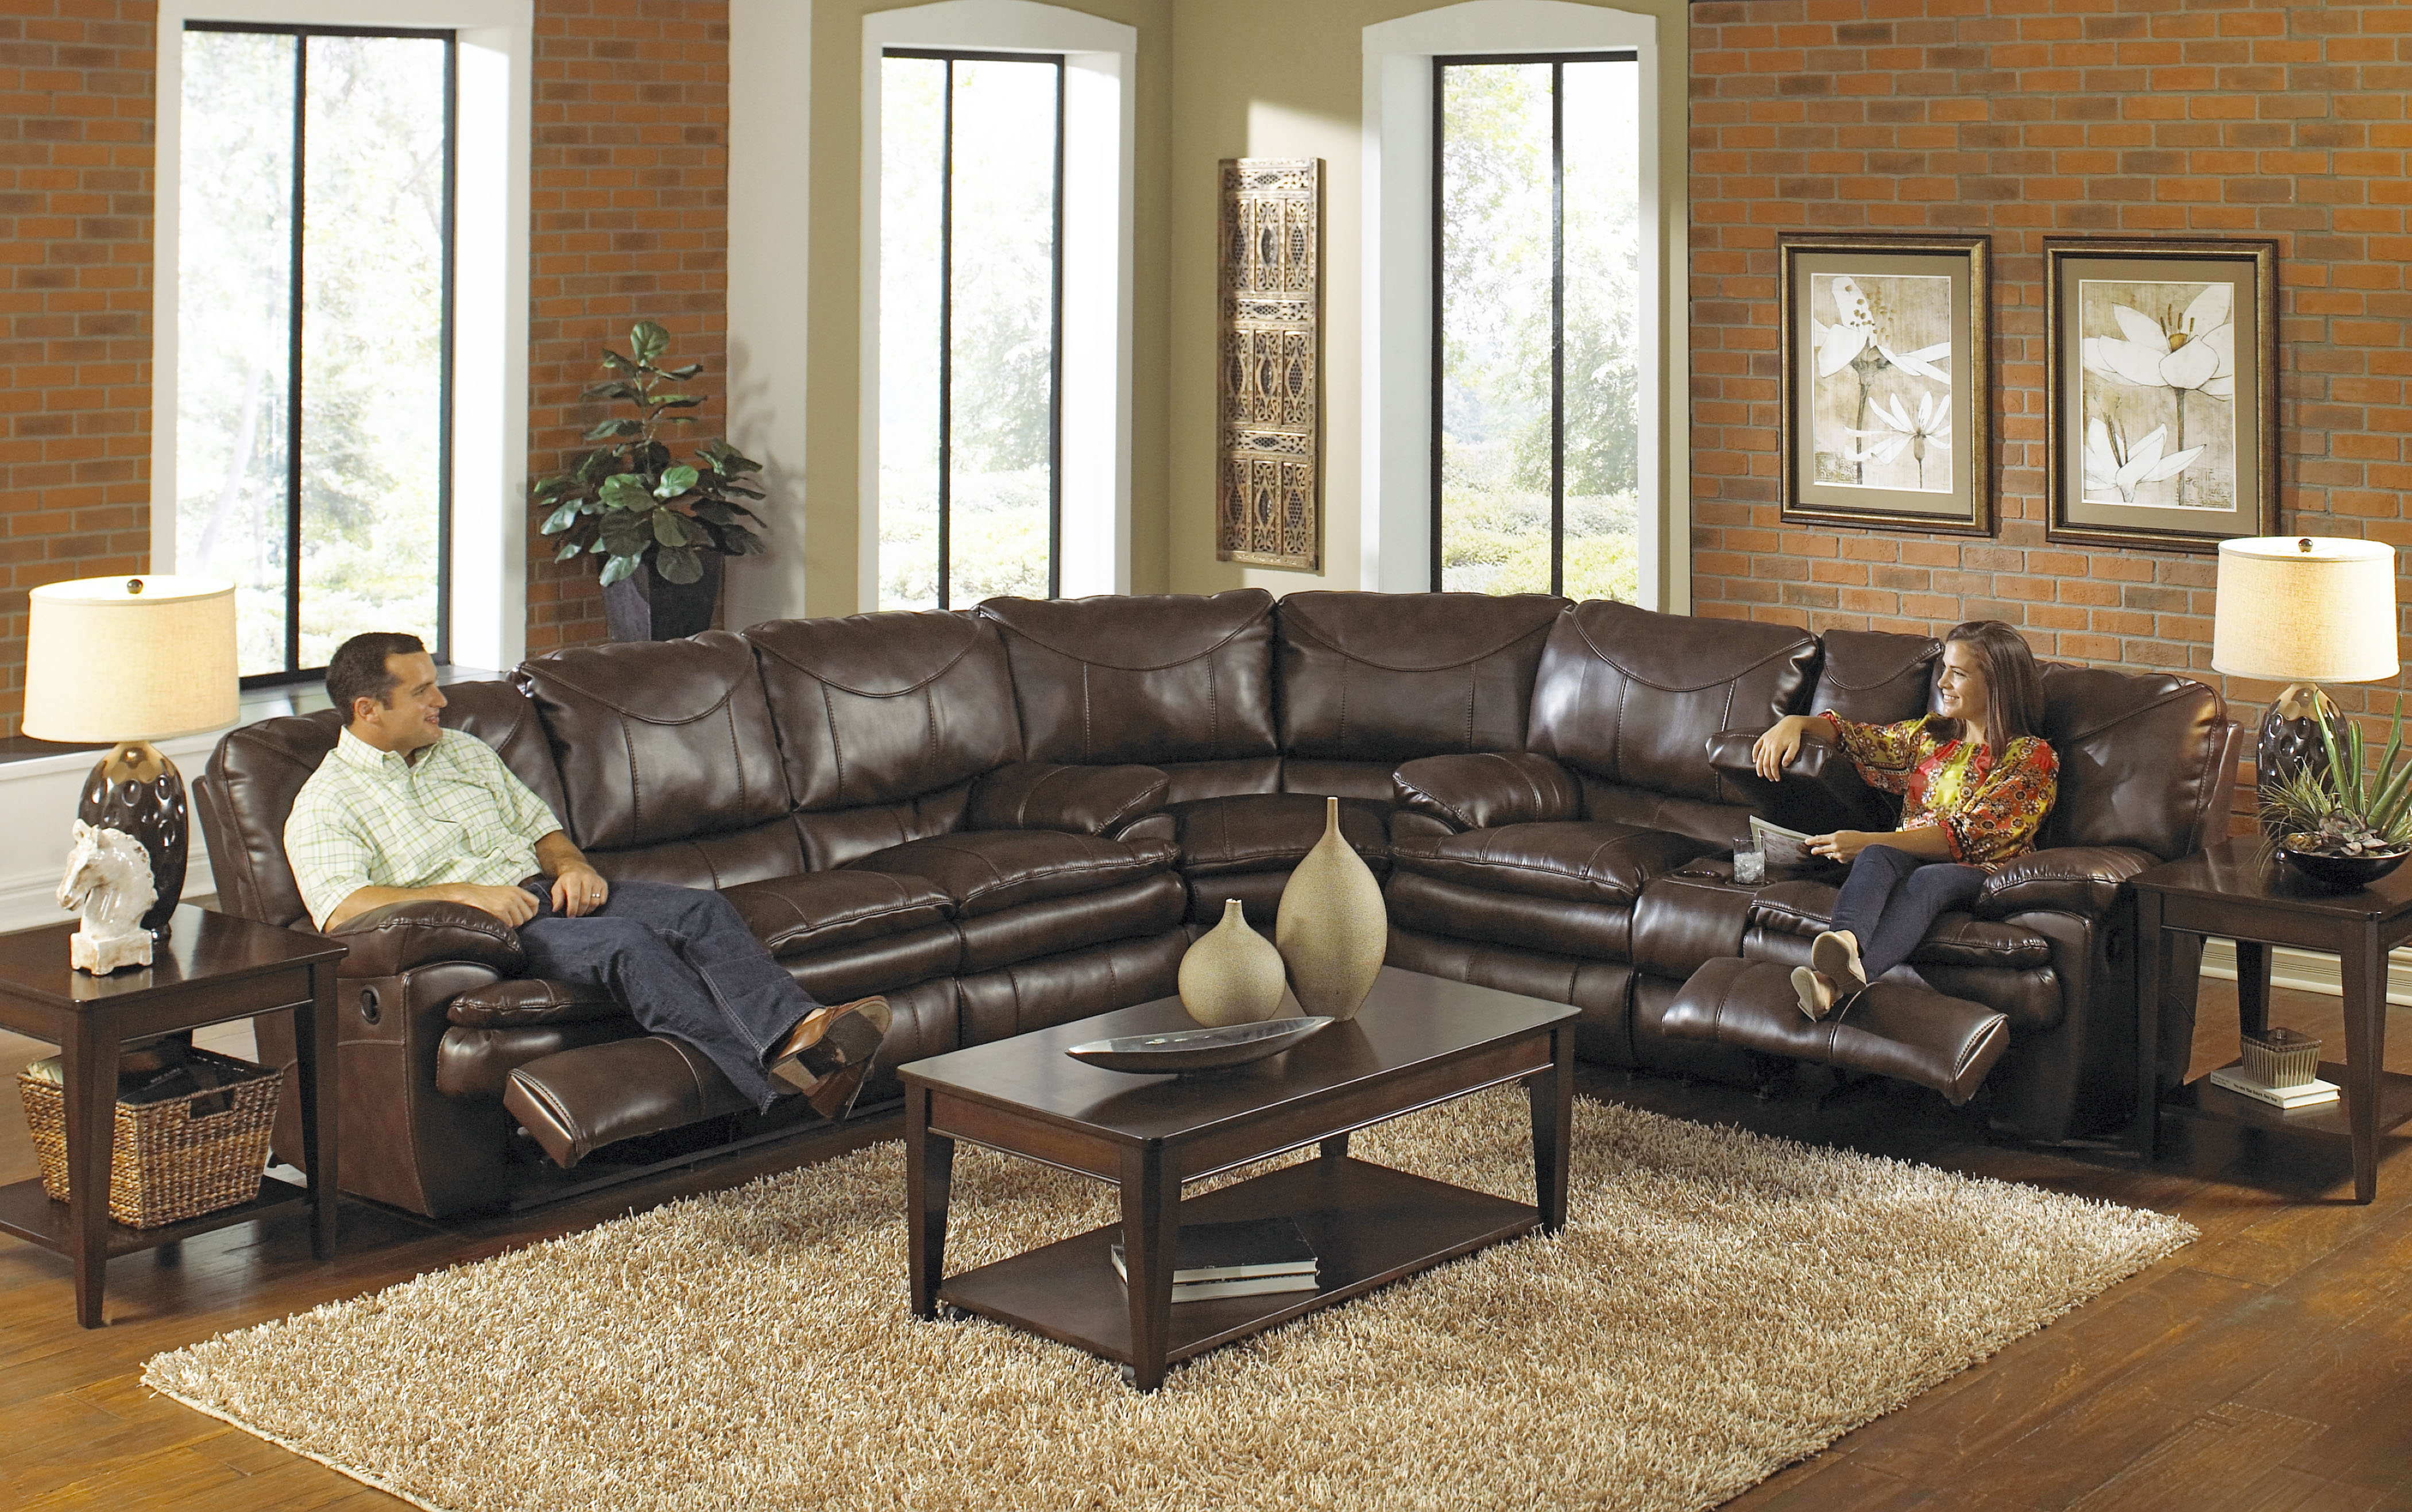 Seating furniture – sectional reclining sofa